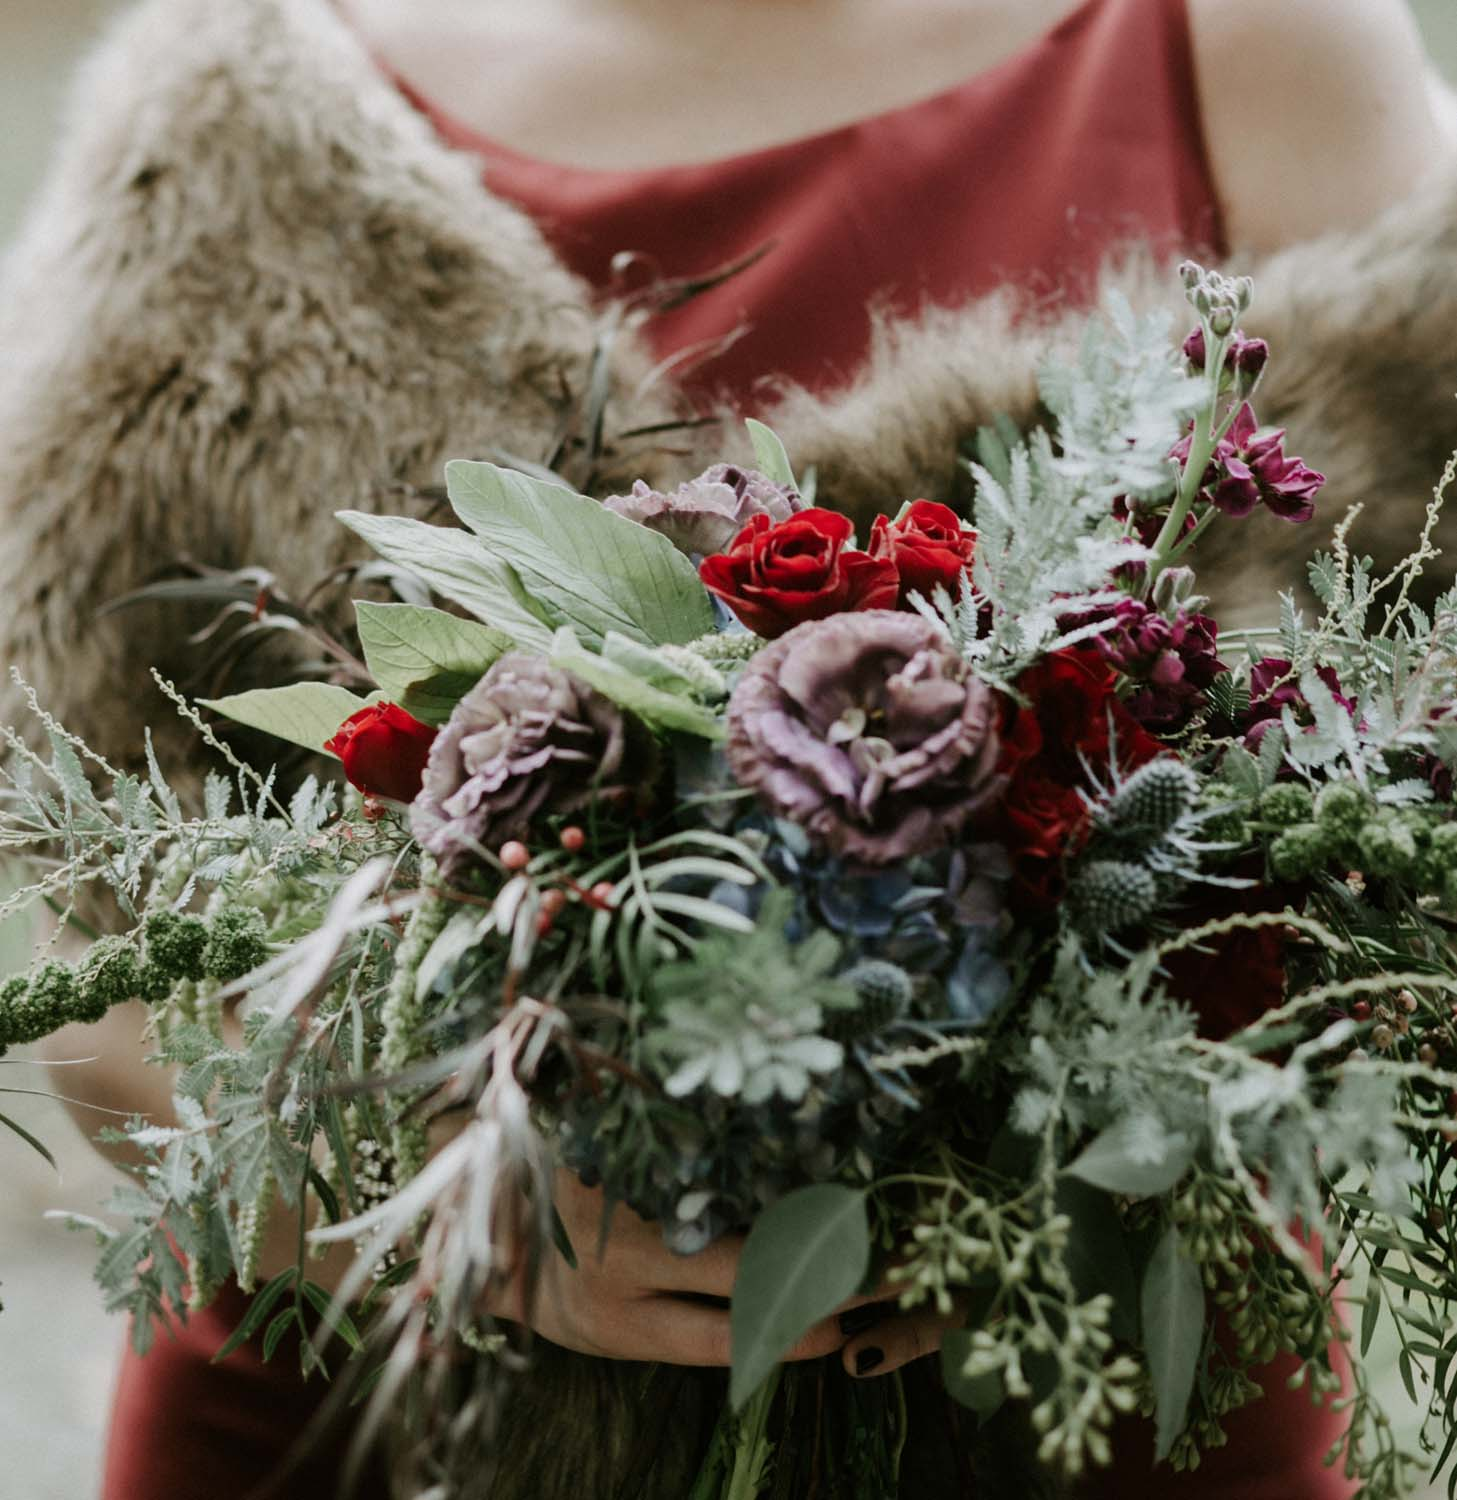 darkly-romantic-wedding-flowers-candis-floral-creations_19